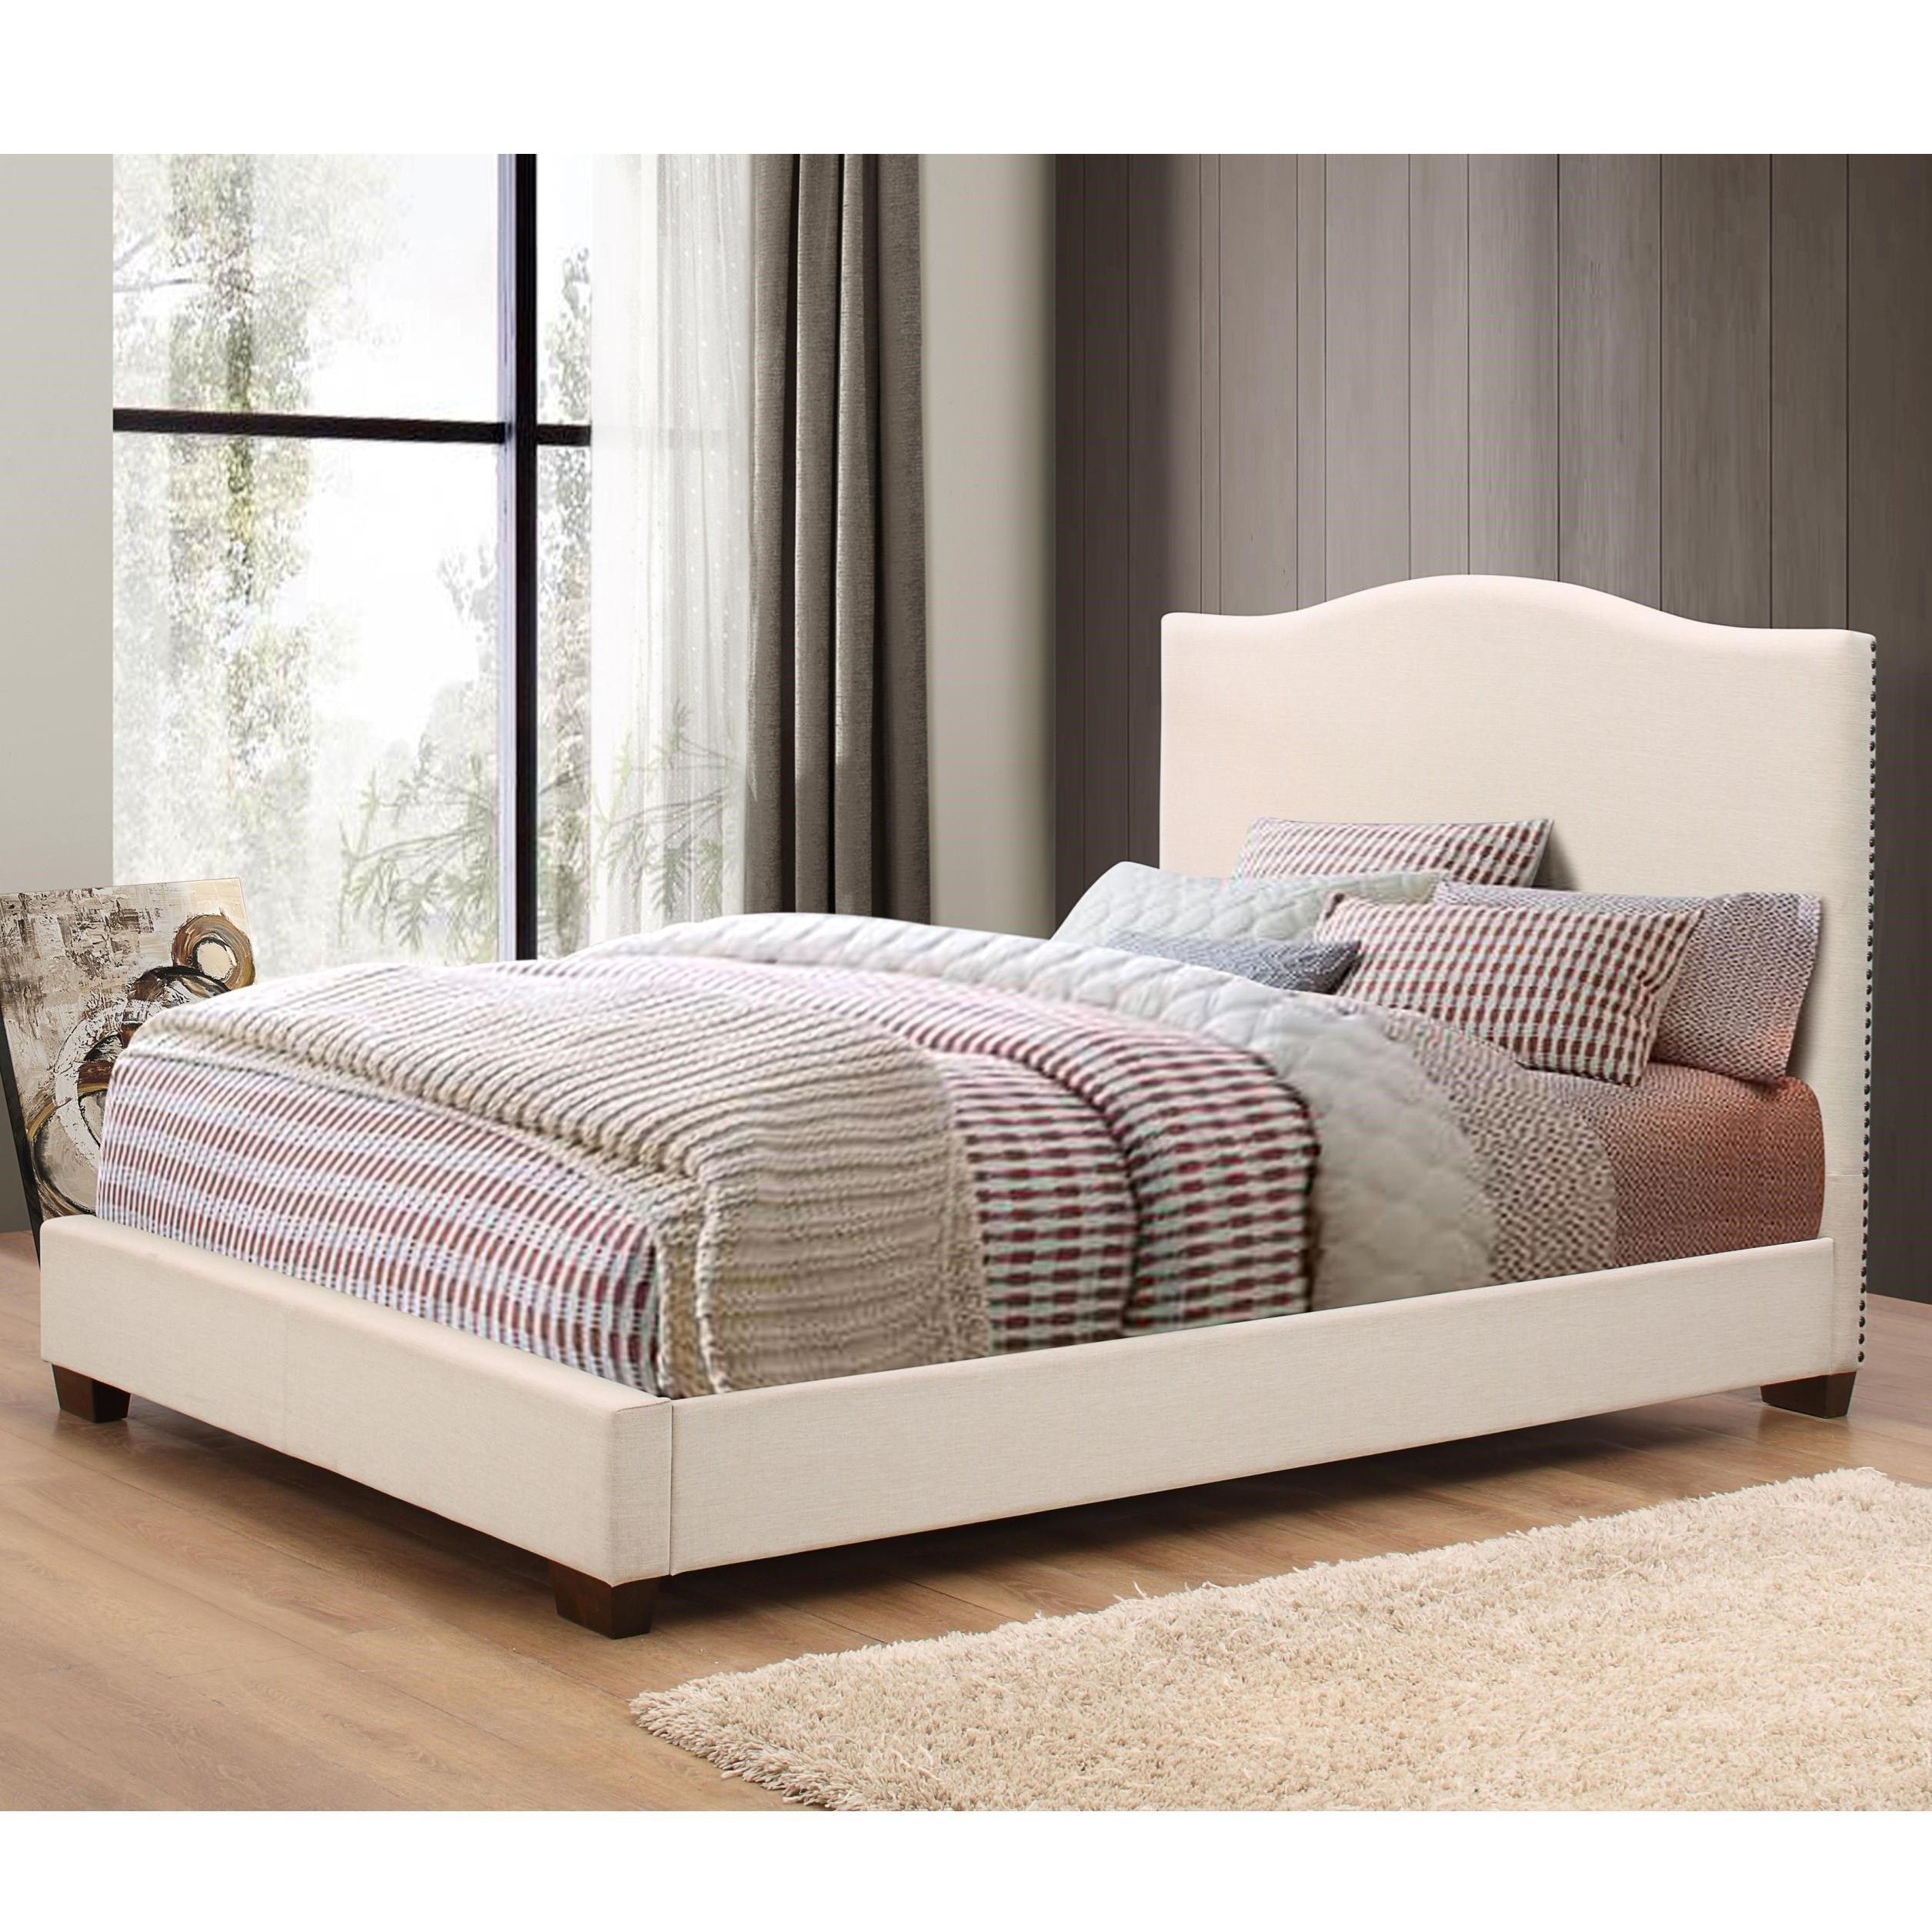 Crown mark mara cream upholstered queen bed royal for Royal headboard